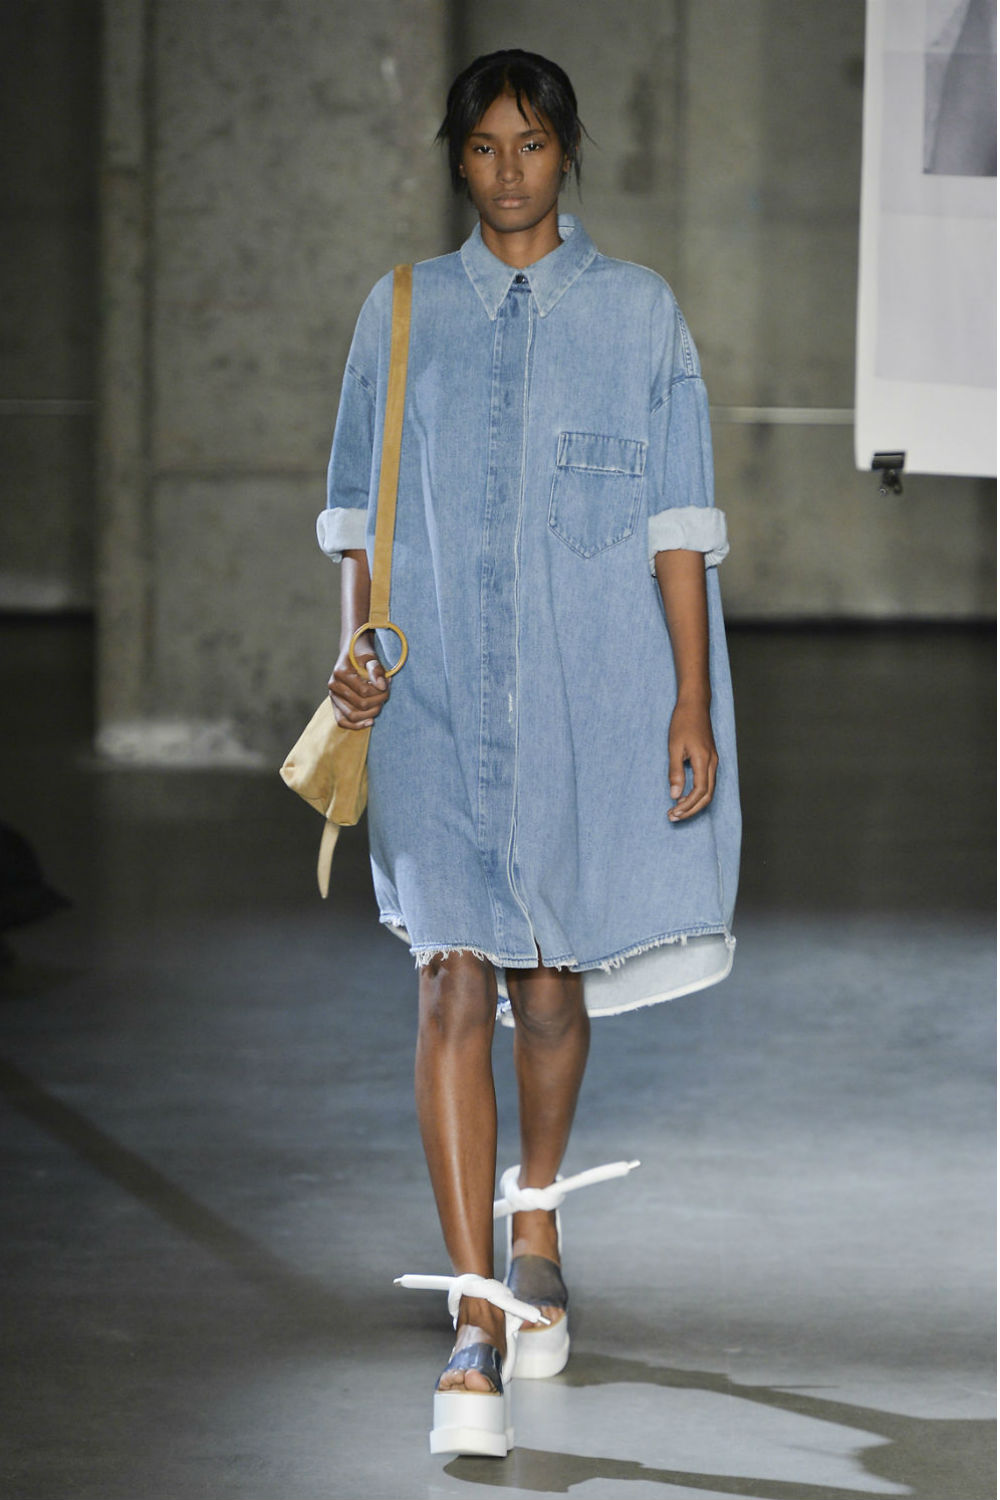 fcb68747d70 Shirt Dresses: 3 Ways We'll Be Wearing Ours This SS15